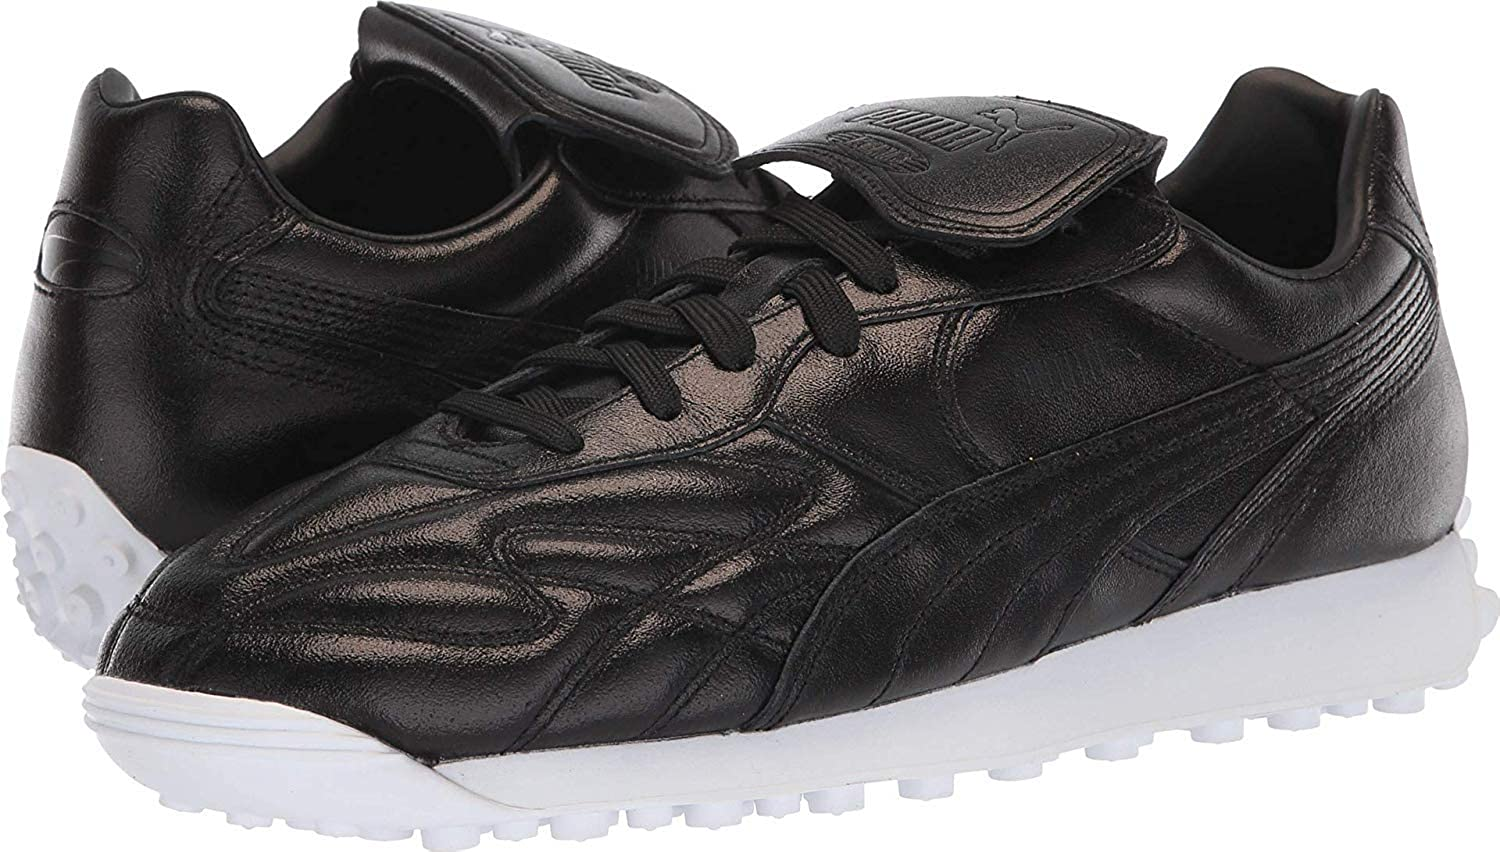 PUMA King Avanti Trophy Mens Black Leather Lace Up Sneakers